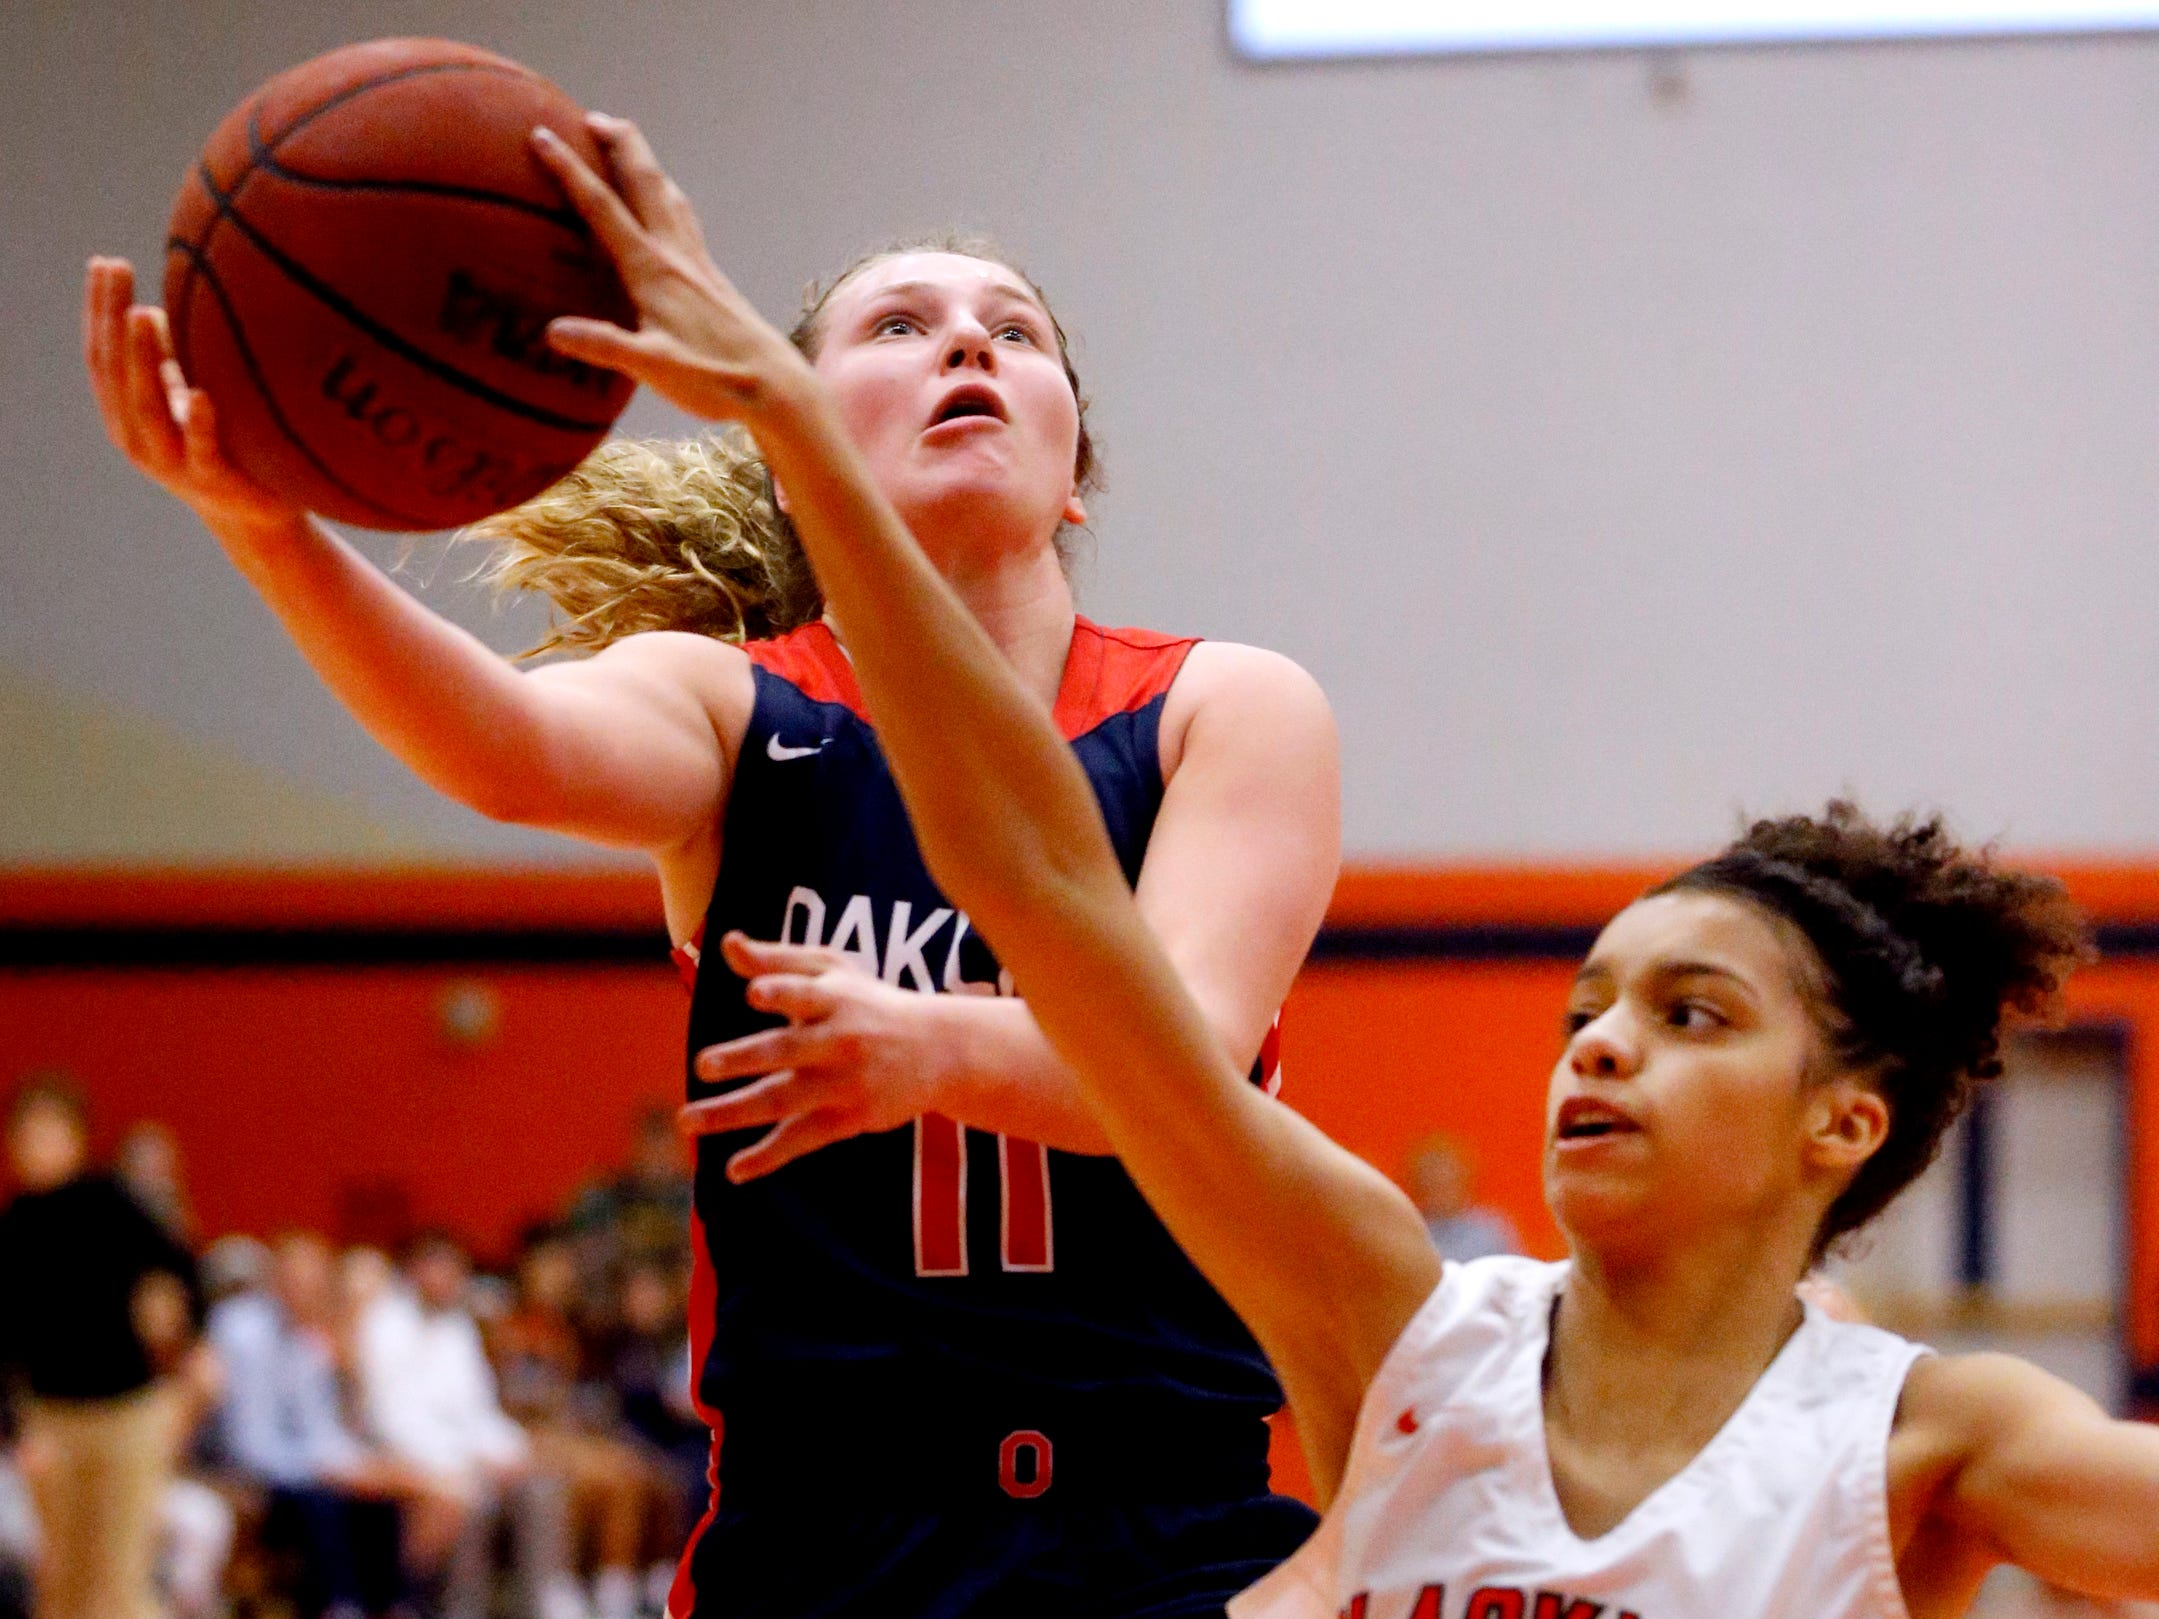 Blackman's Faith Anderson (11) got up for a shot as Blackman's Victoria Page (15) guards her on Friday, Feb. 8, 2019.